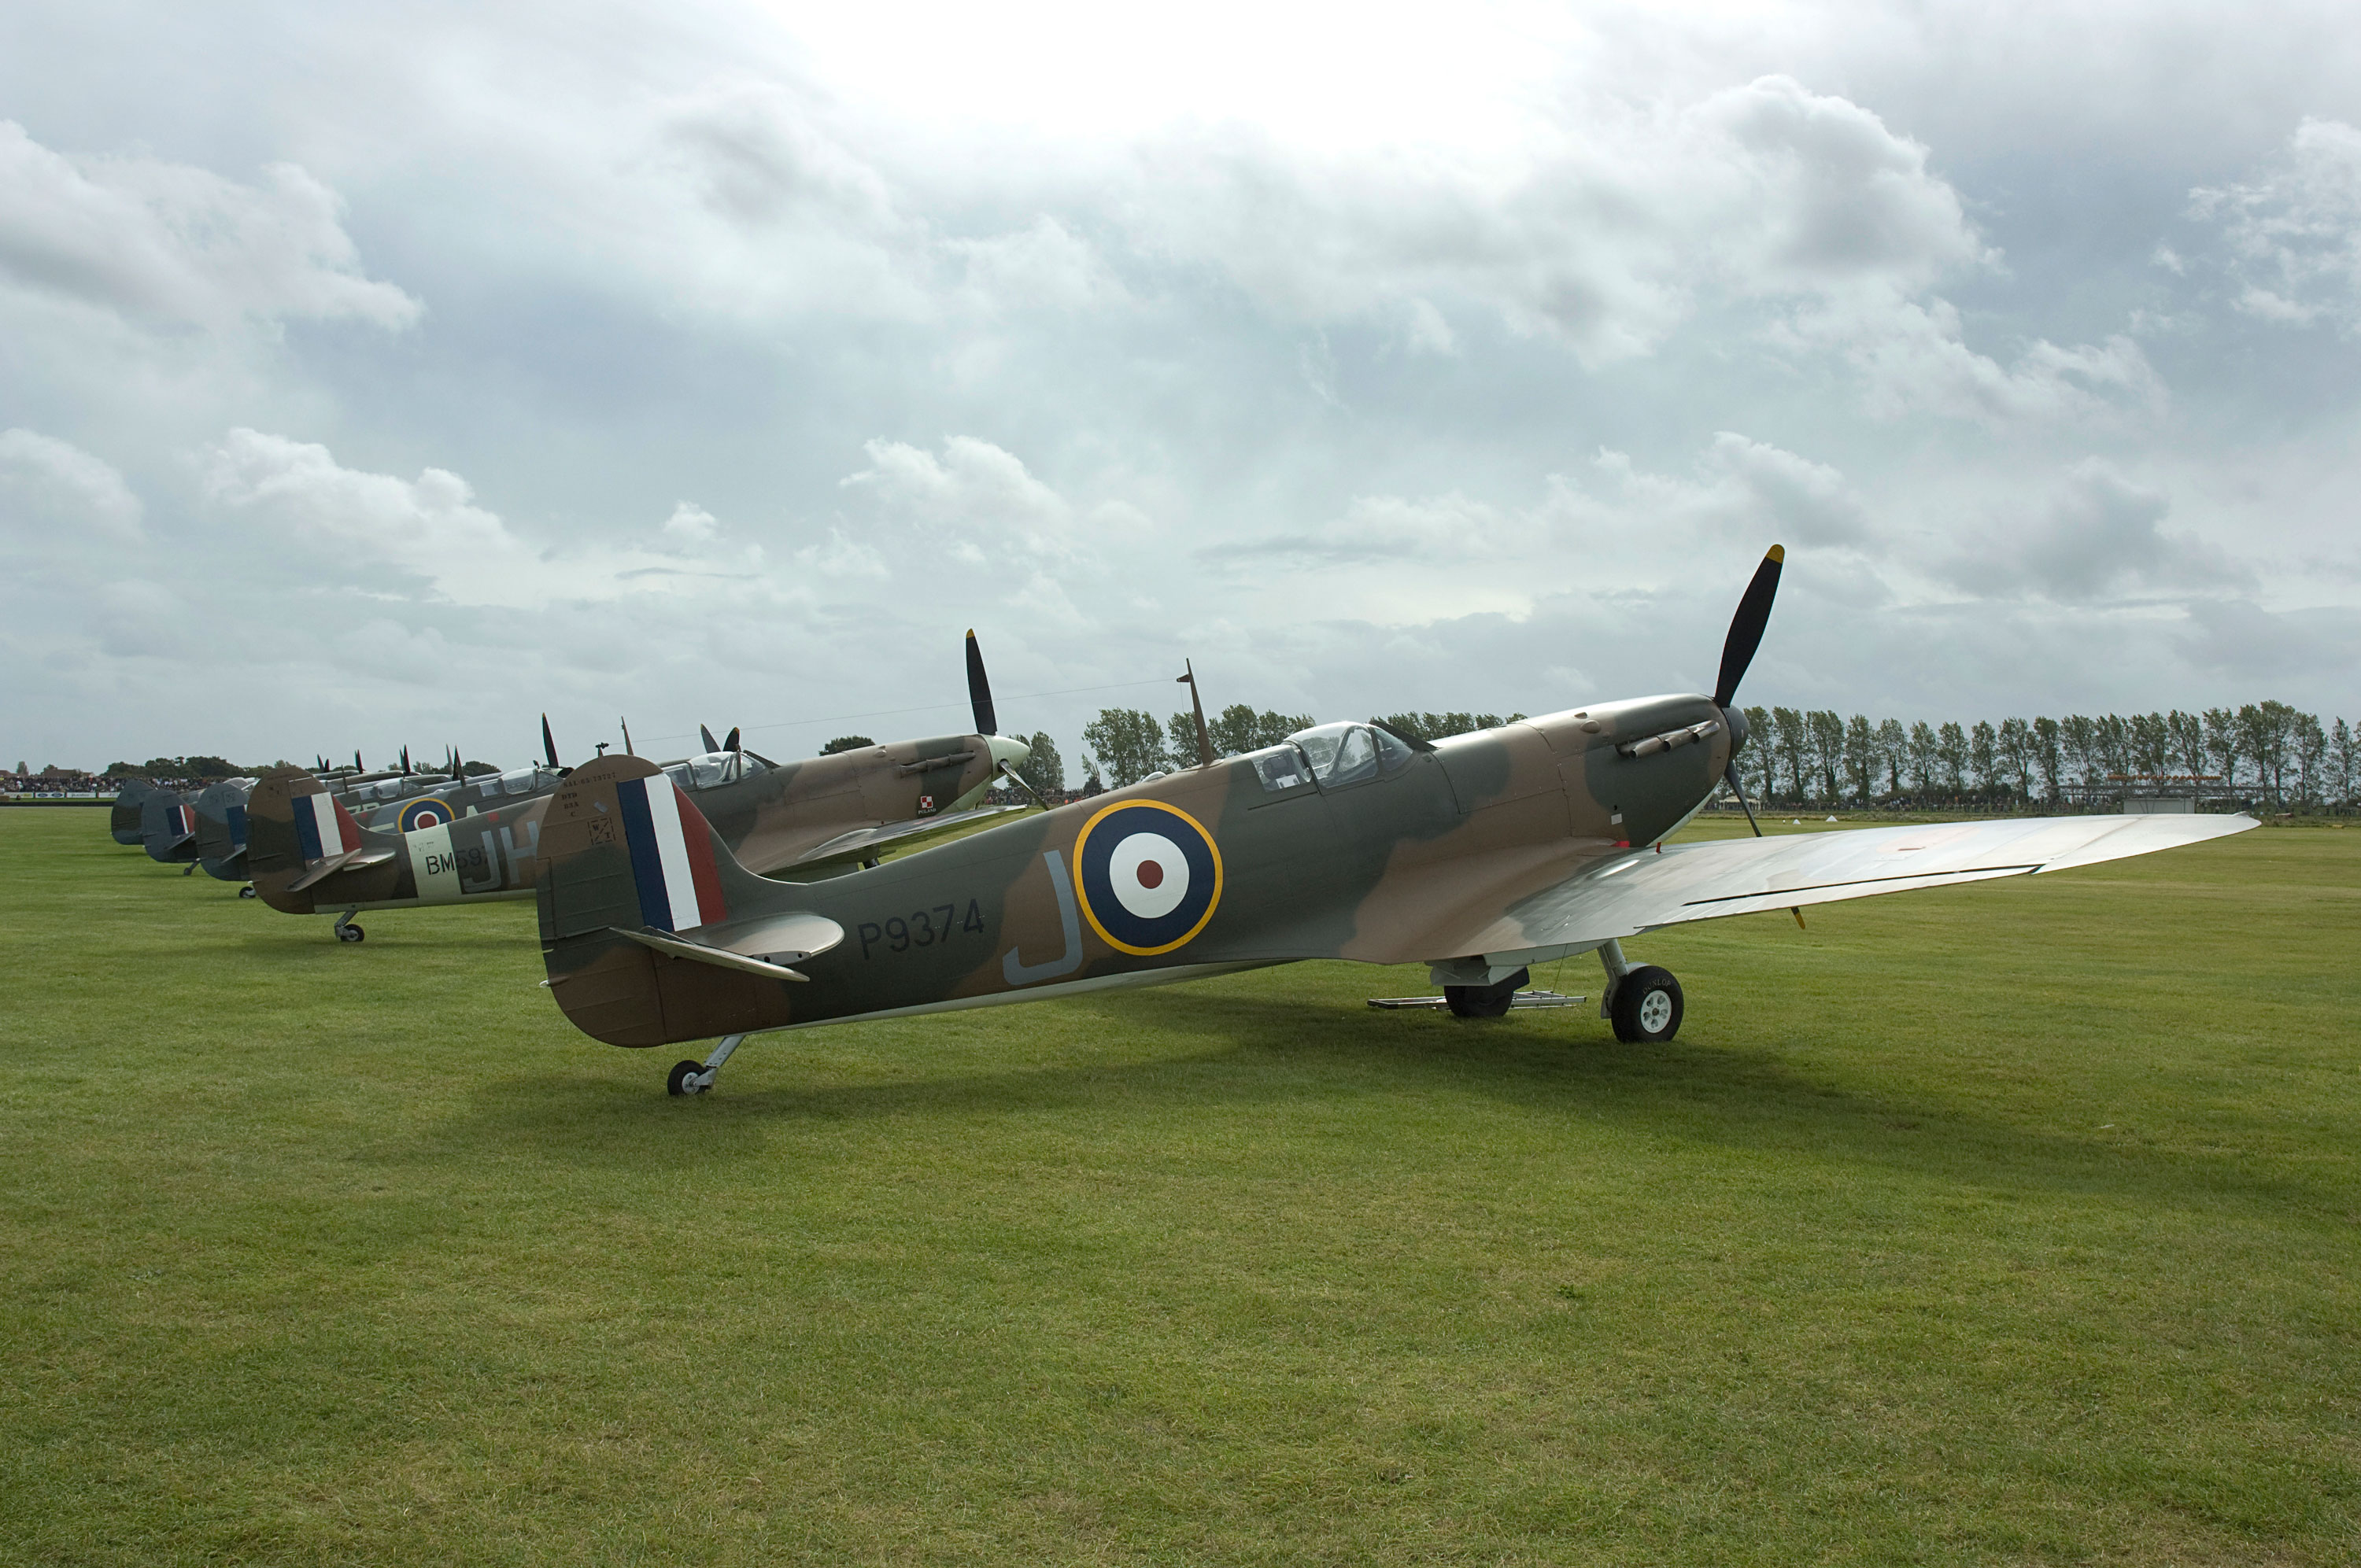 Line of Spitfires in field